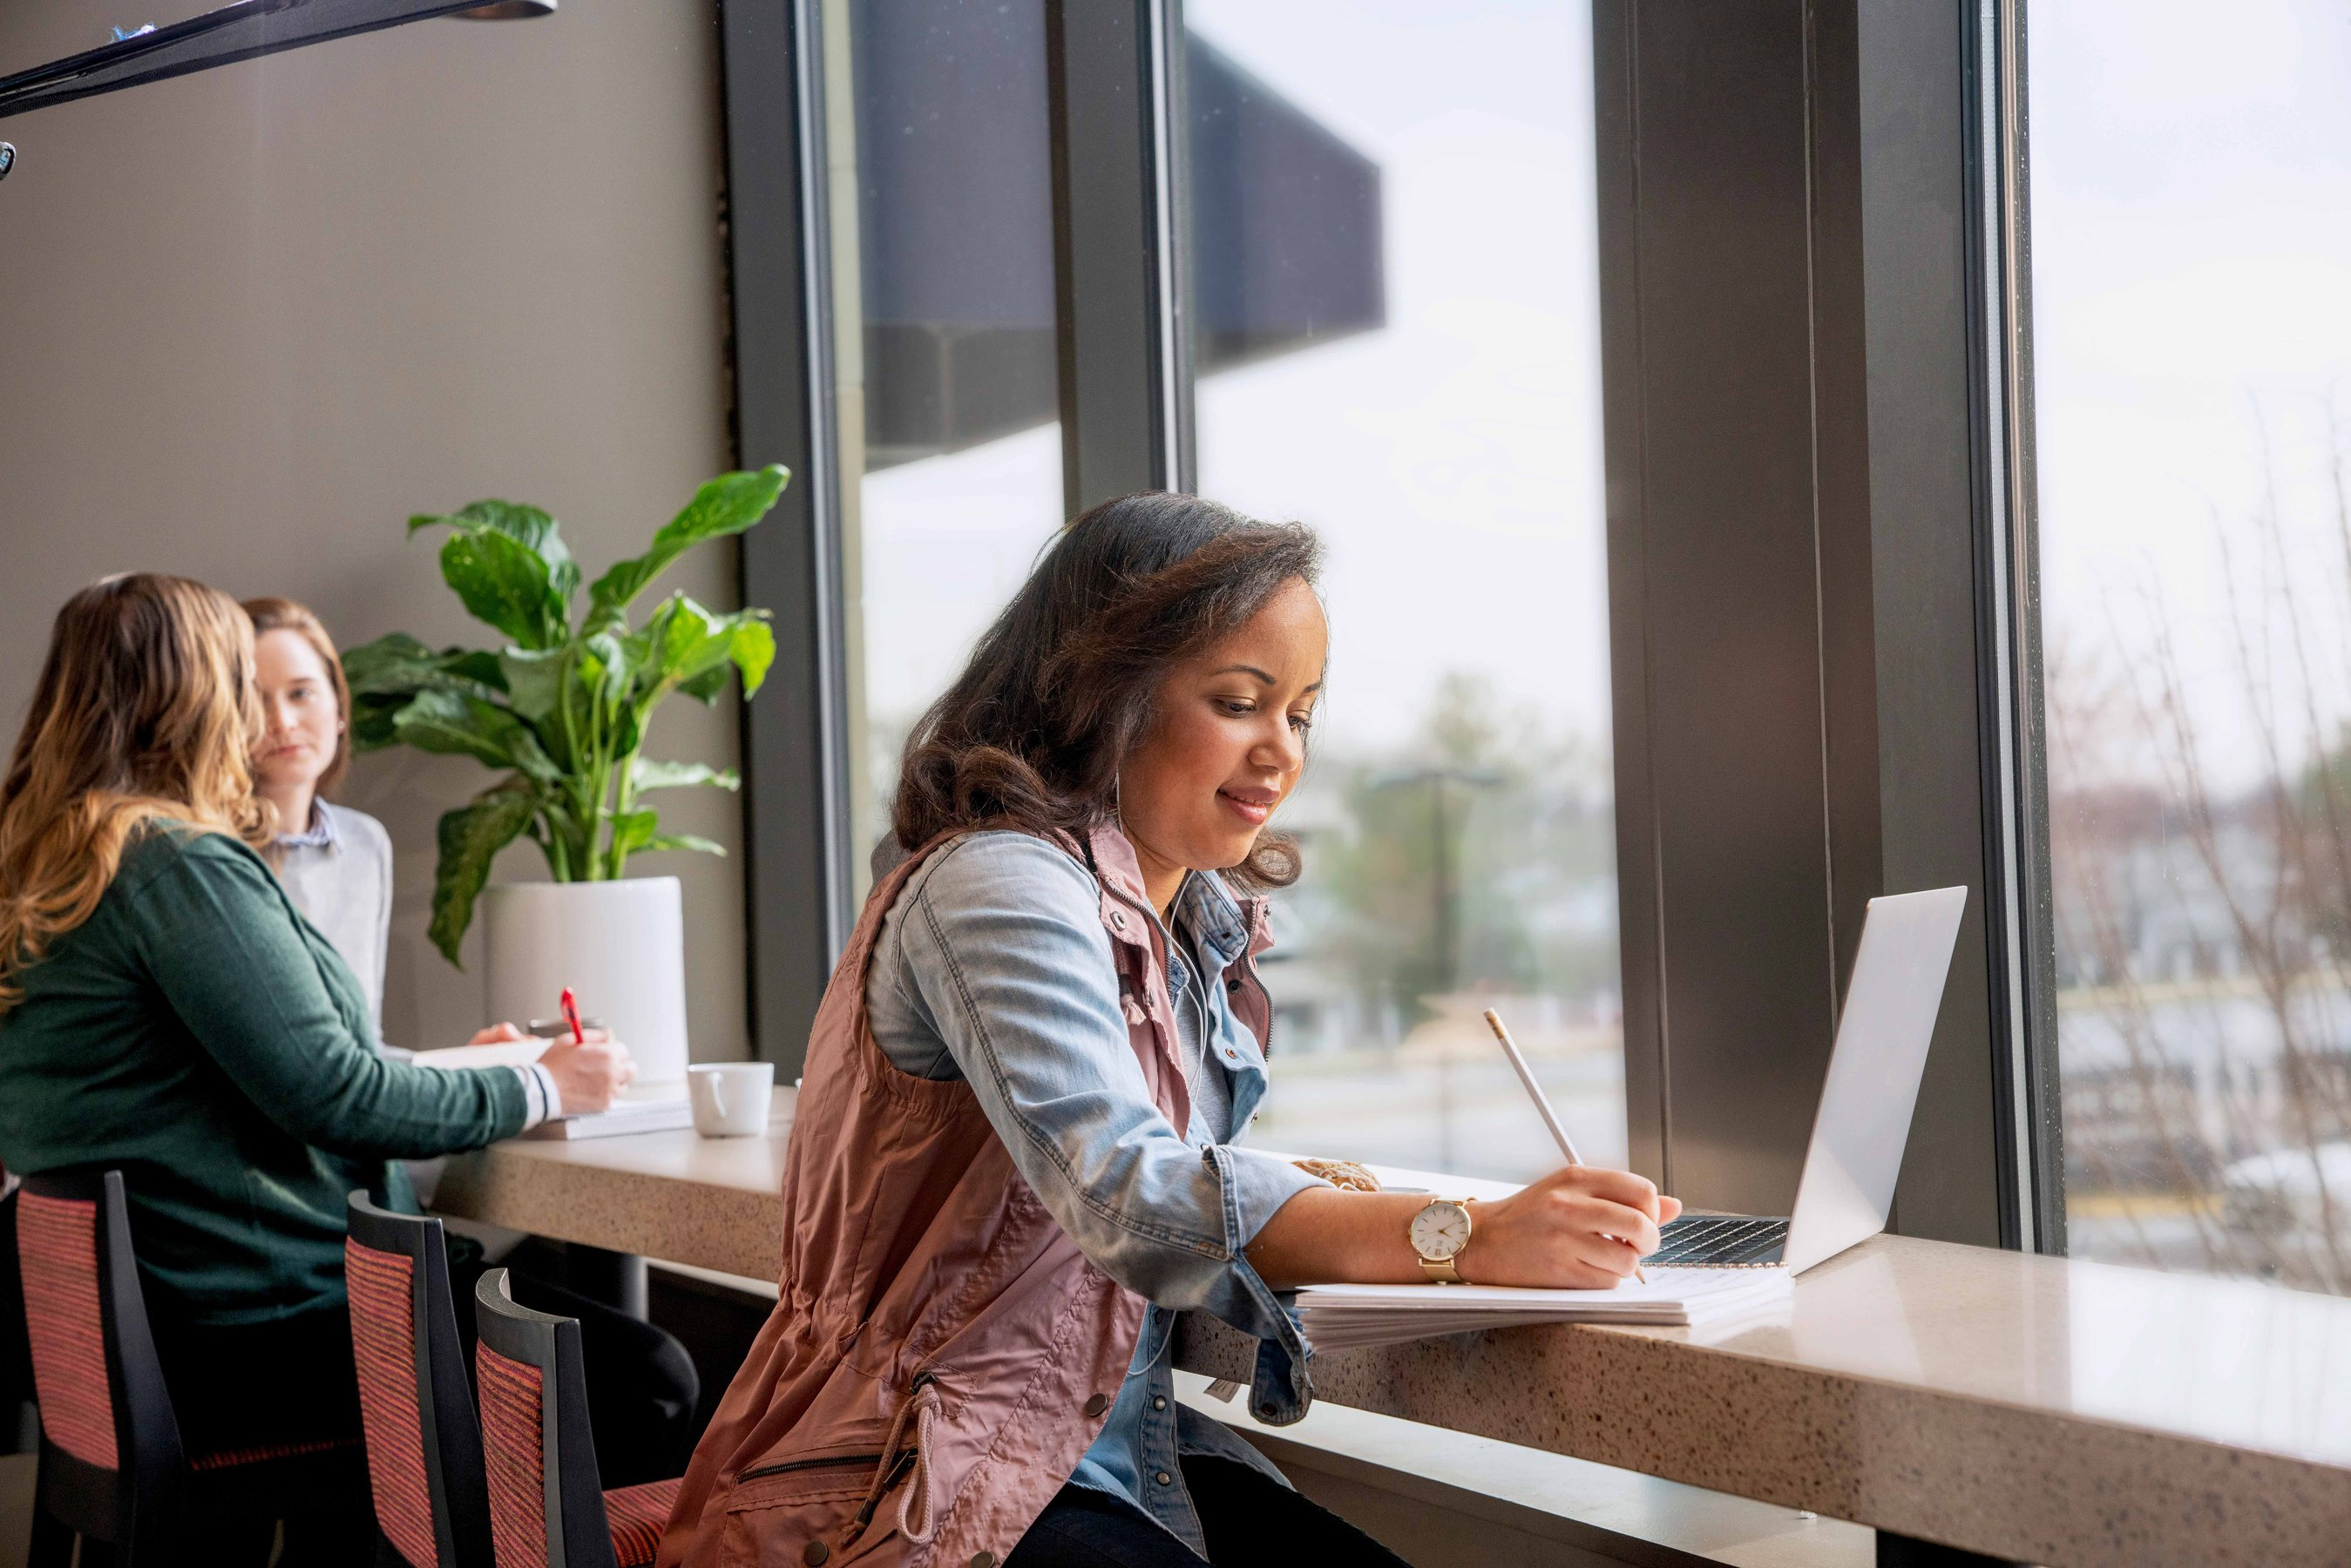 A woman writes on a notepad while sitting in a cafe lounge and working on her laptop